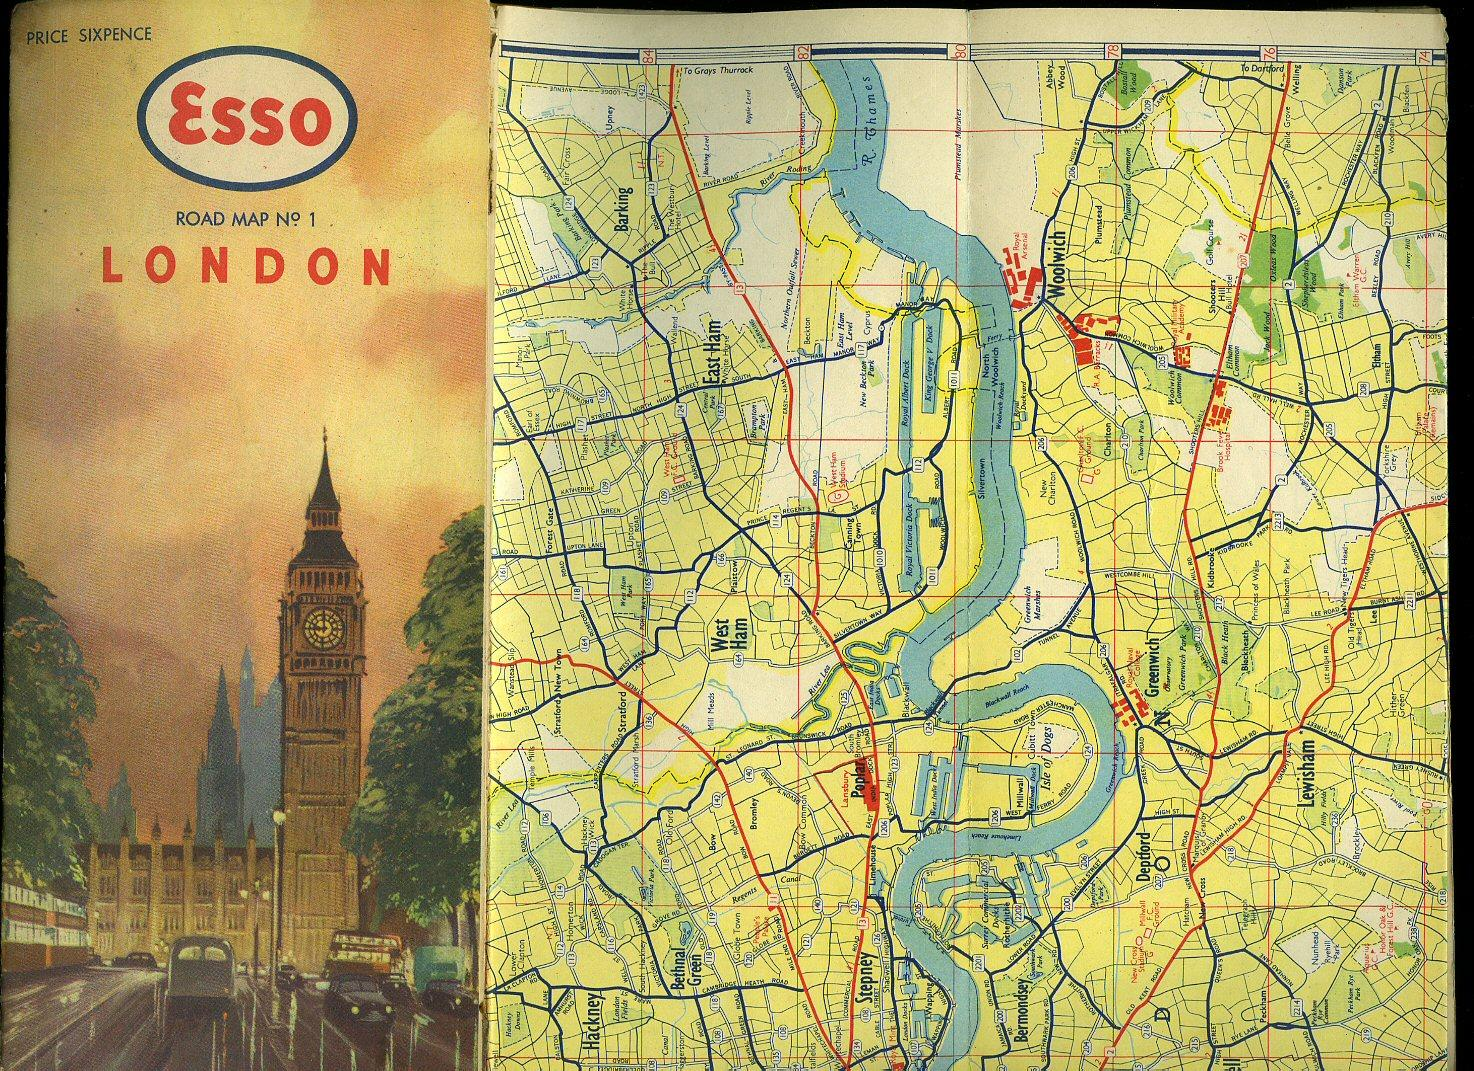 esso road map no 1 london illustration by blake to front cover